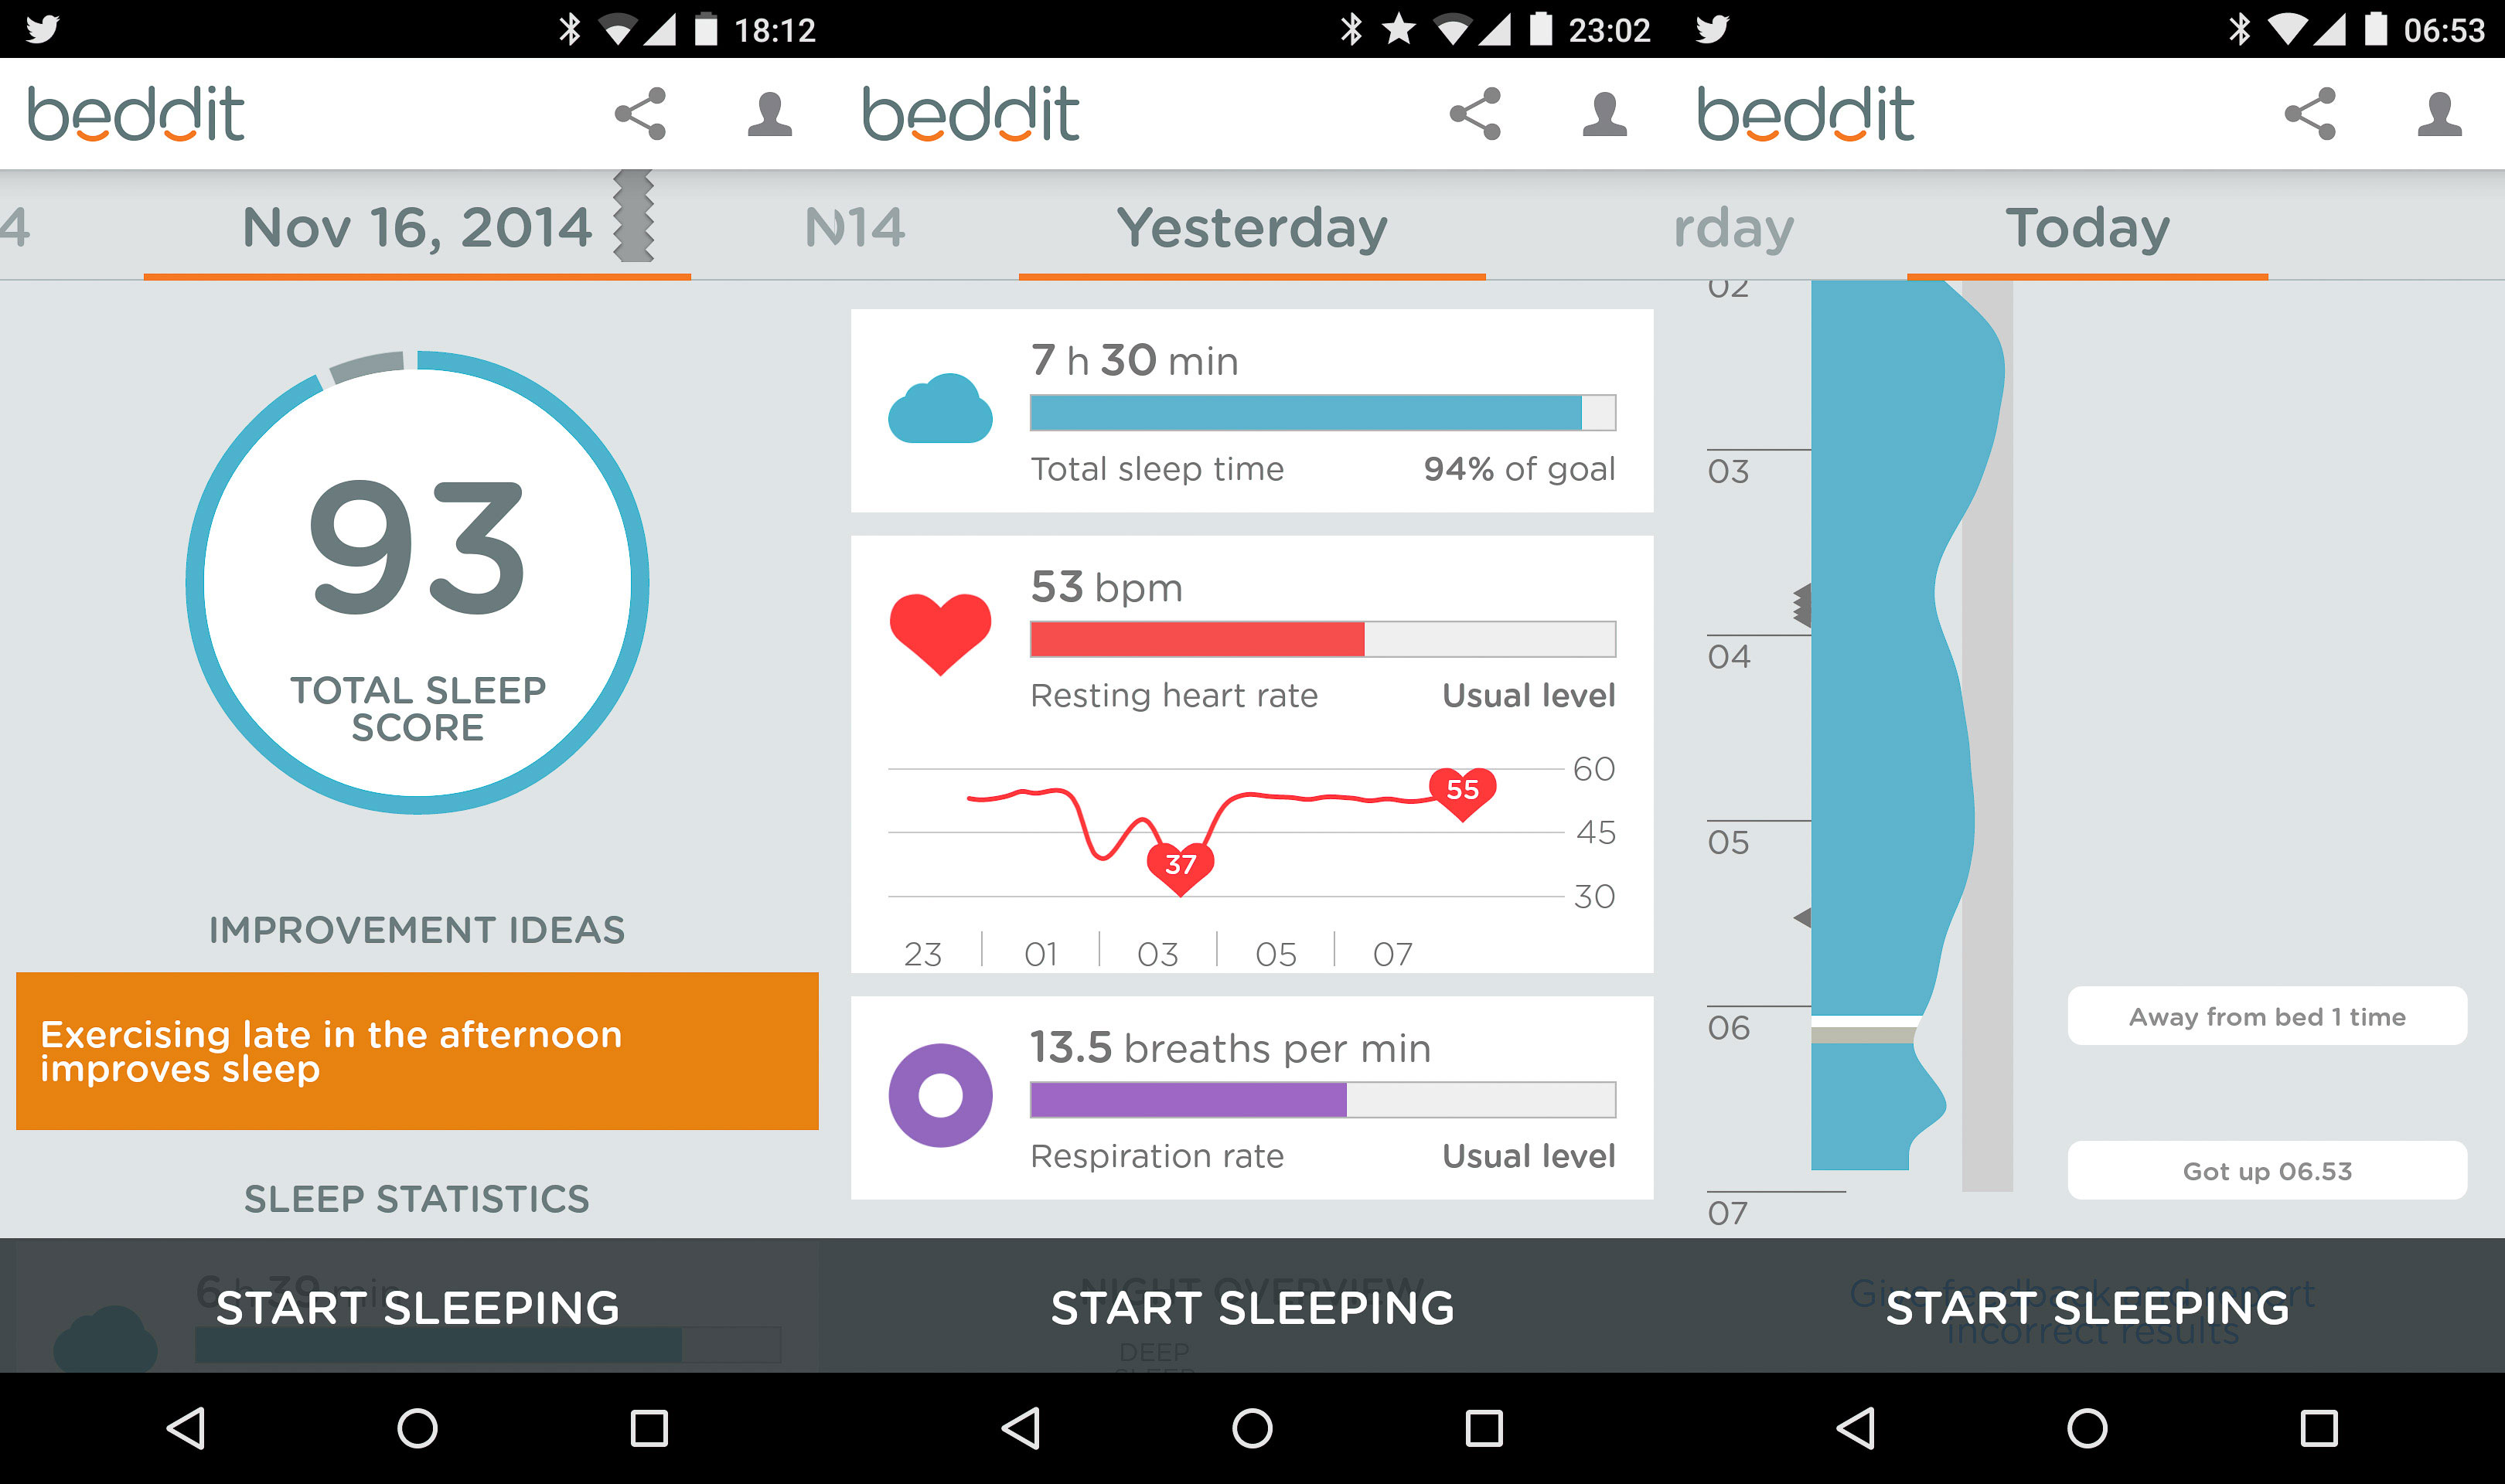 Beddit's iOS or Android app gives an easy-to-grasp view of your sleep quality.